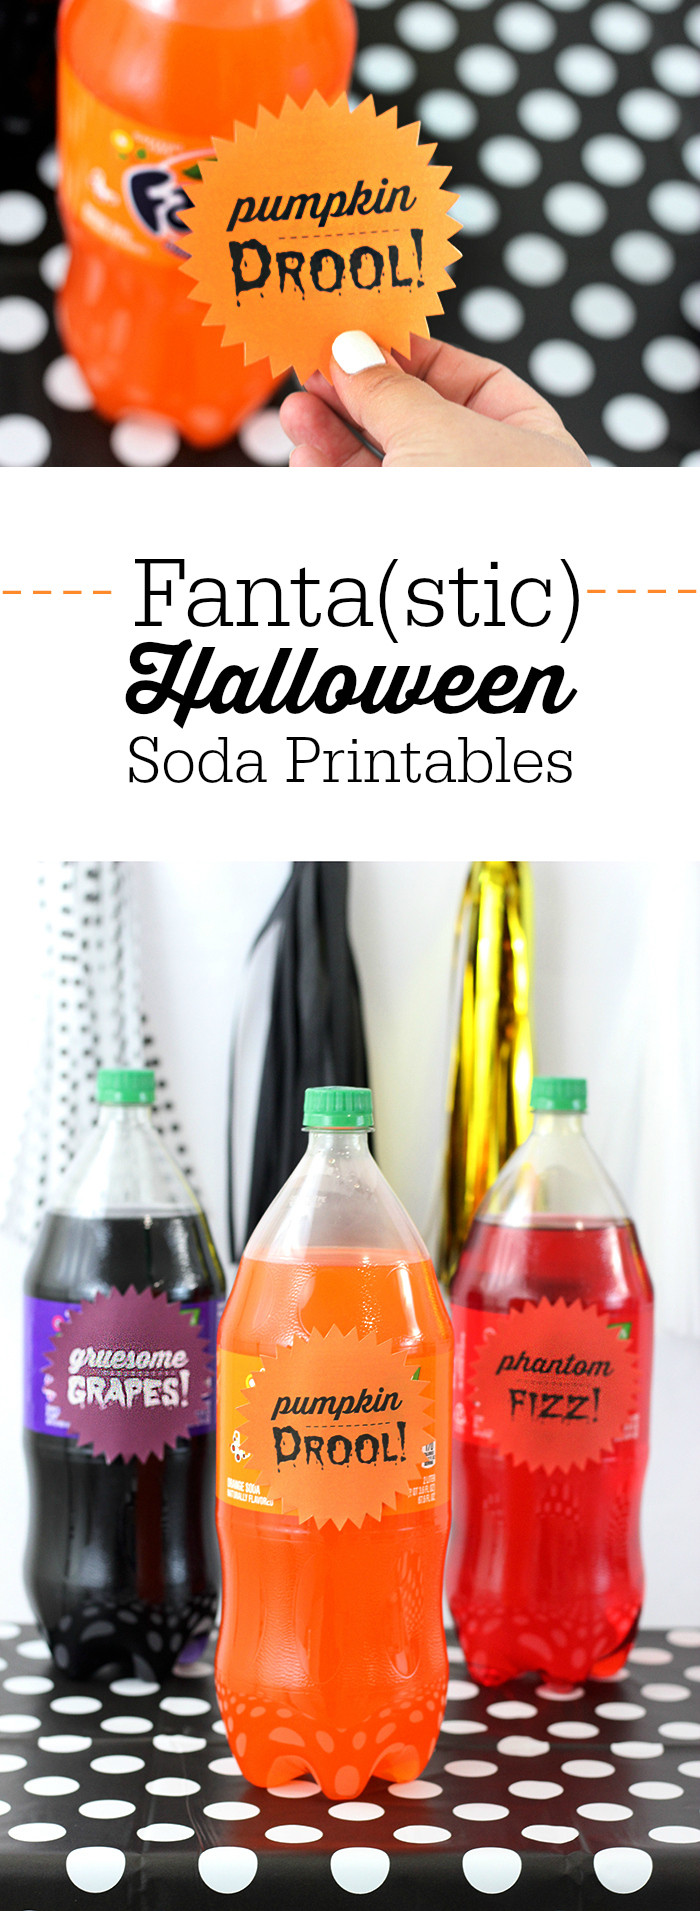 Creepy Halloween Party Treats. From haunted pudding cups, to blood spattered OREO cookies and more. Get fun Fanta Soda Bottle Printables to make them extra spooky.